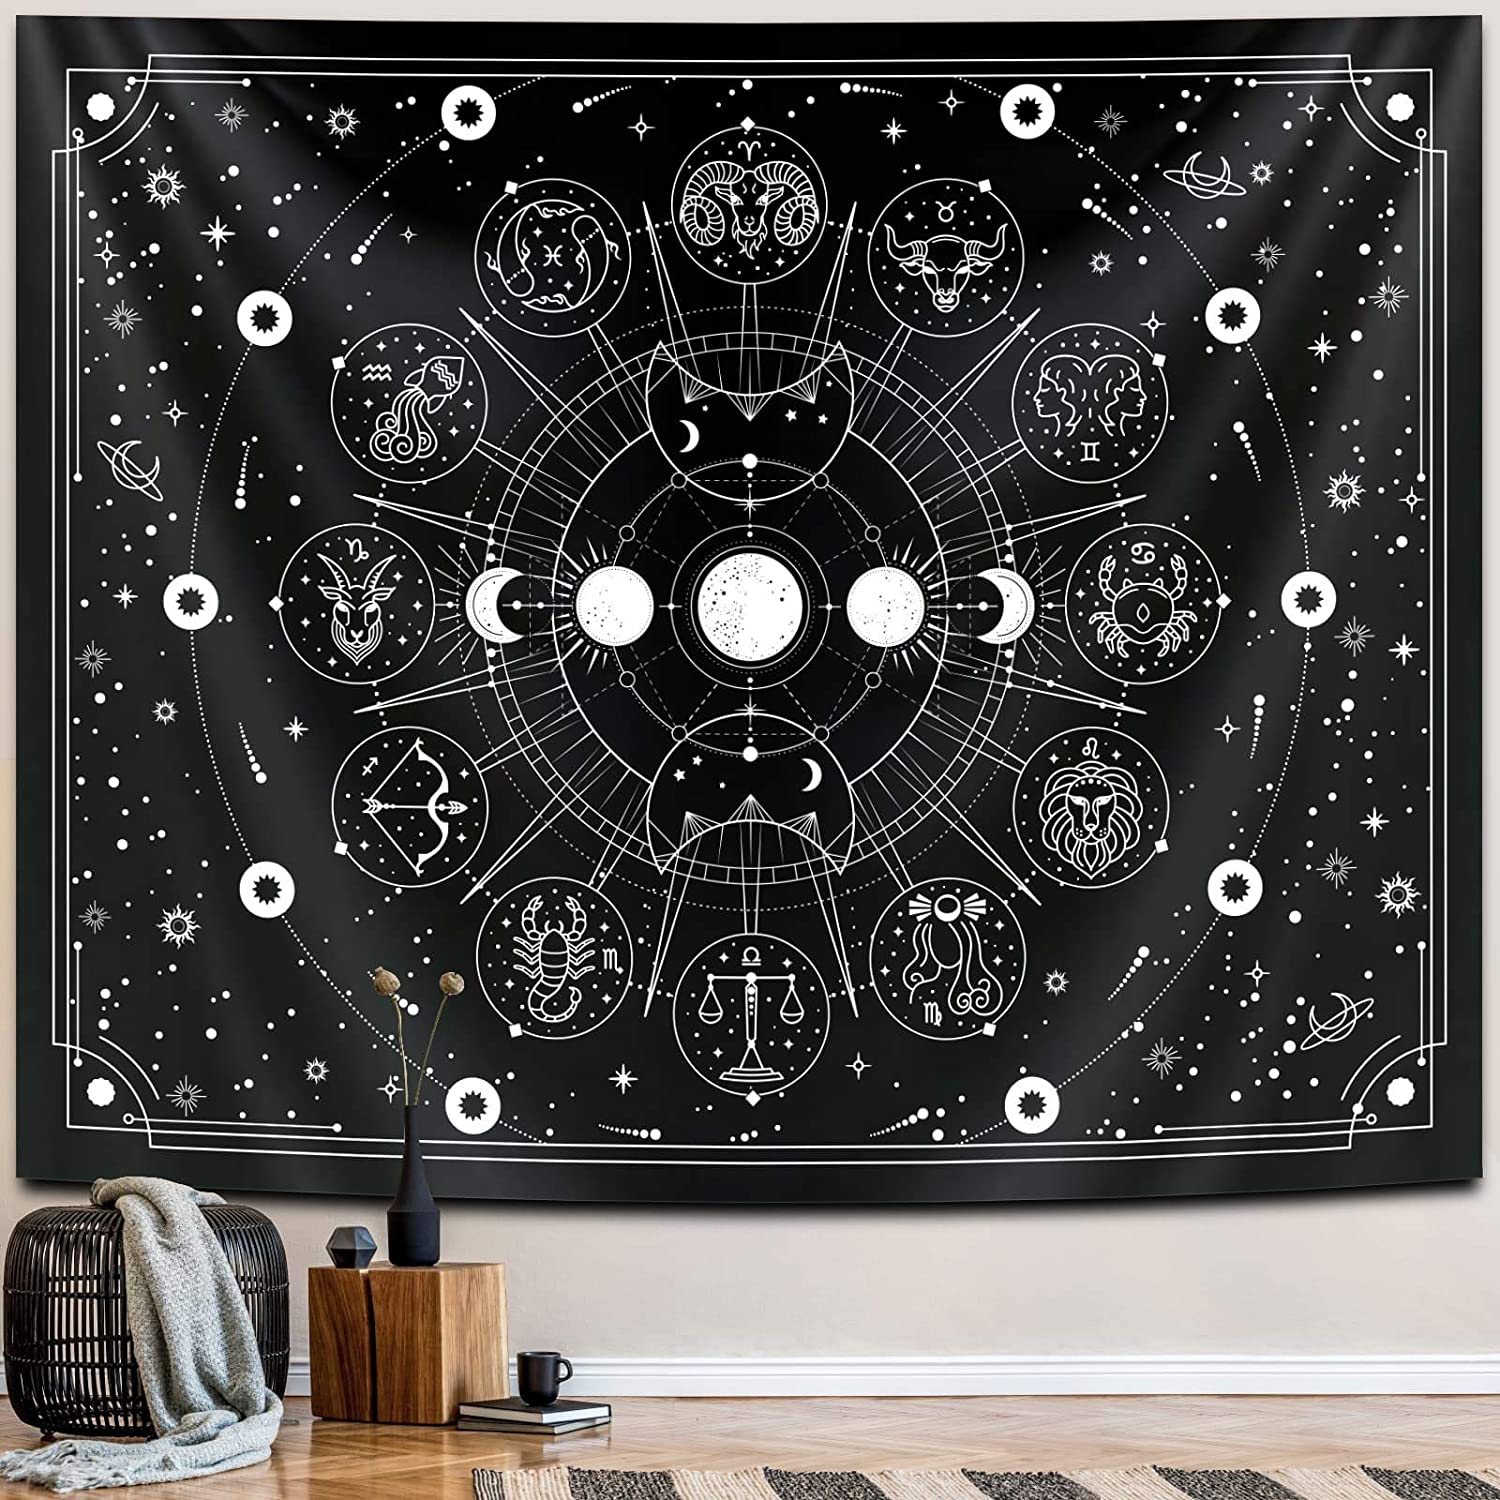 Zodiac Astrology Witchy Tapestry, Black White Constellation Tapestry for Wall Hanging Decor, Stars Space Psychedelic Bedroom Aesthetics Interesting Tapestry for Living Room,Home,Dorm (59 x 78 inches)